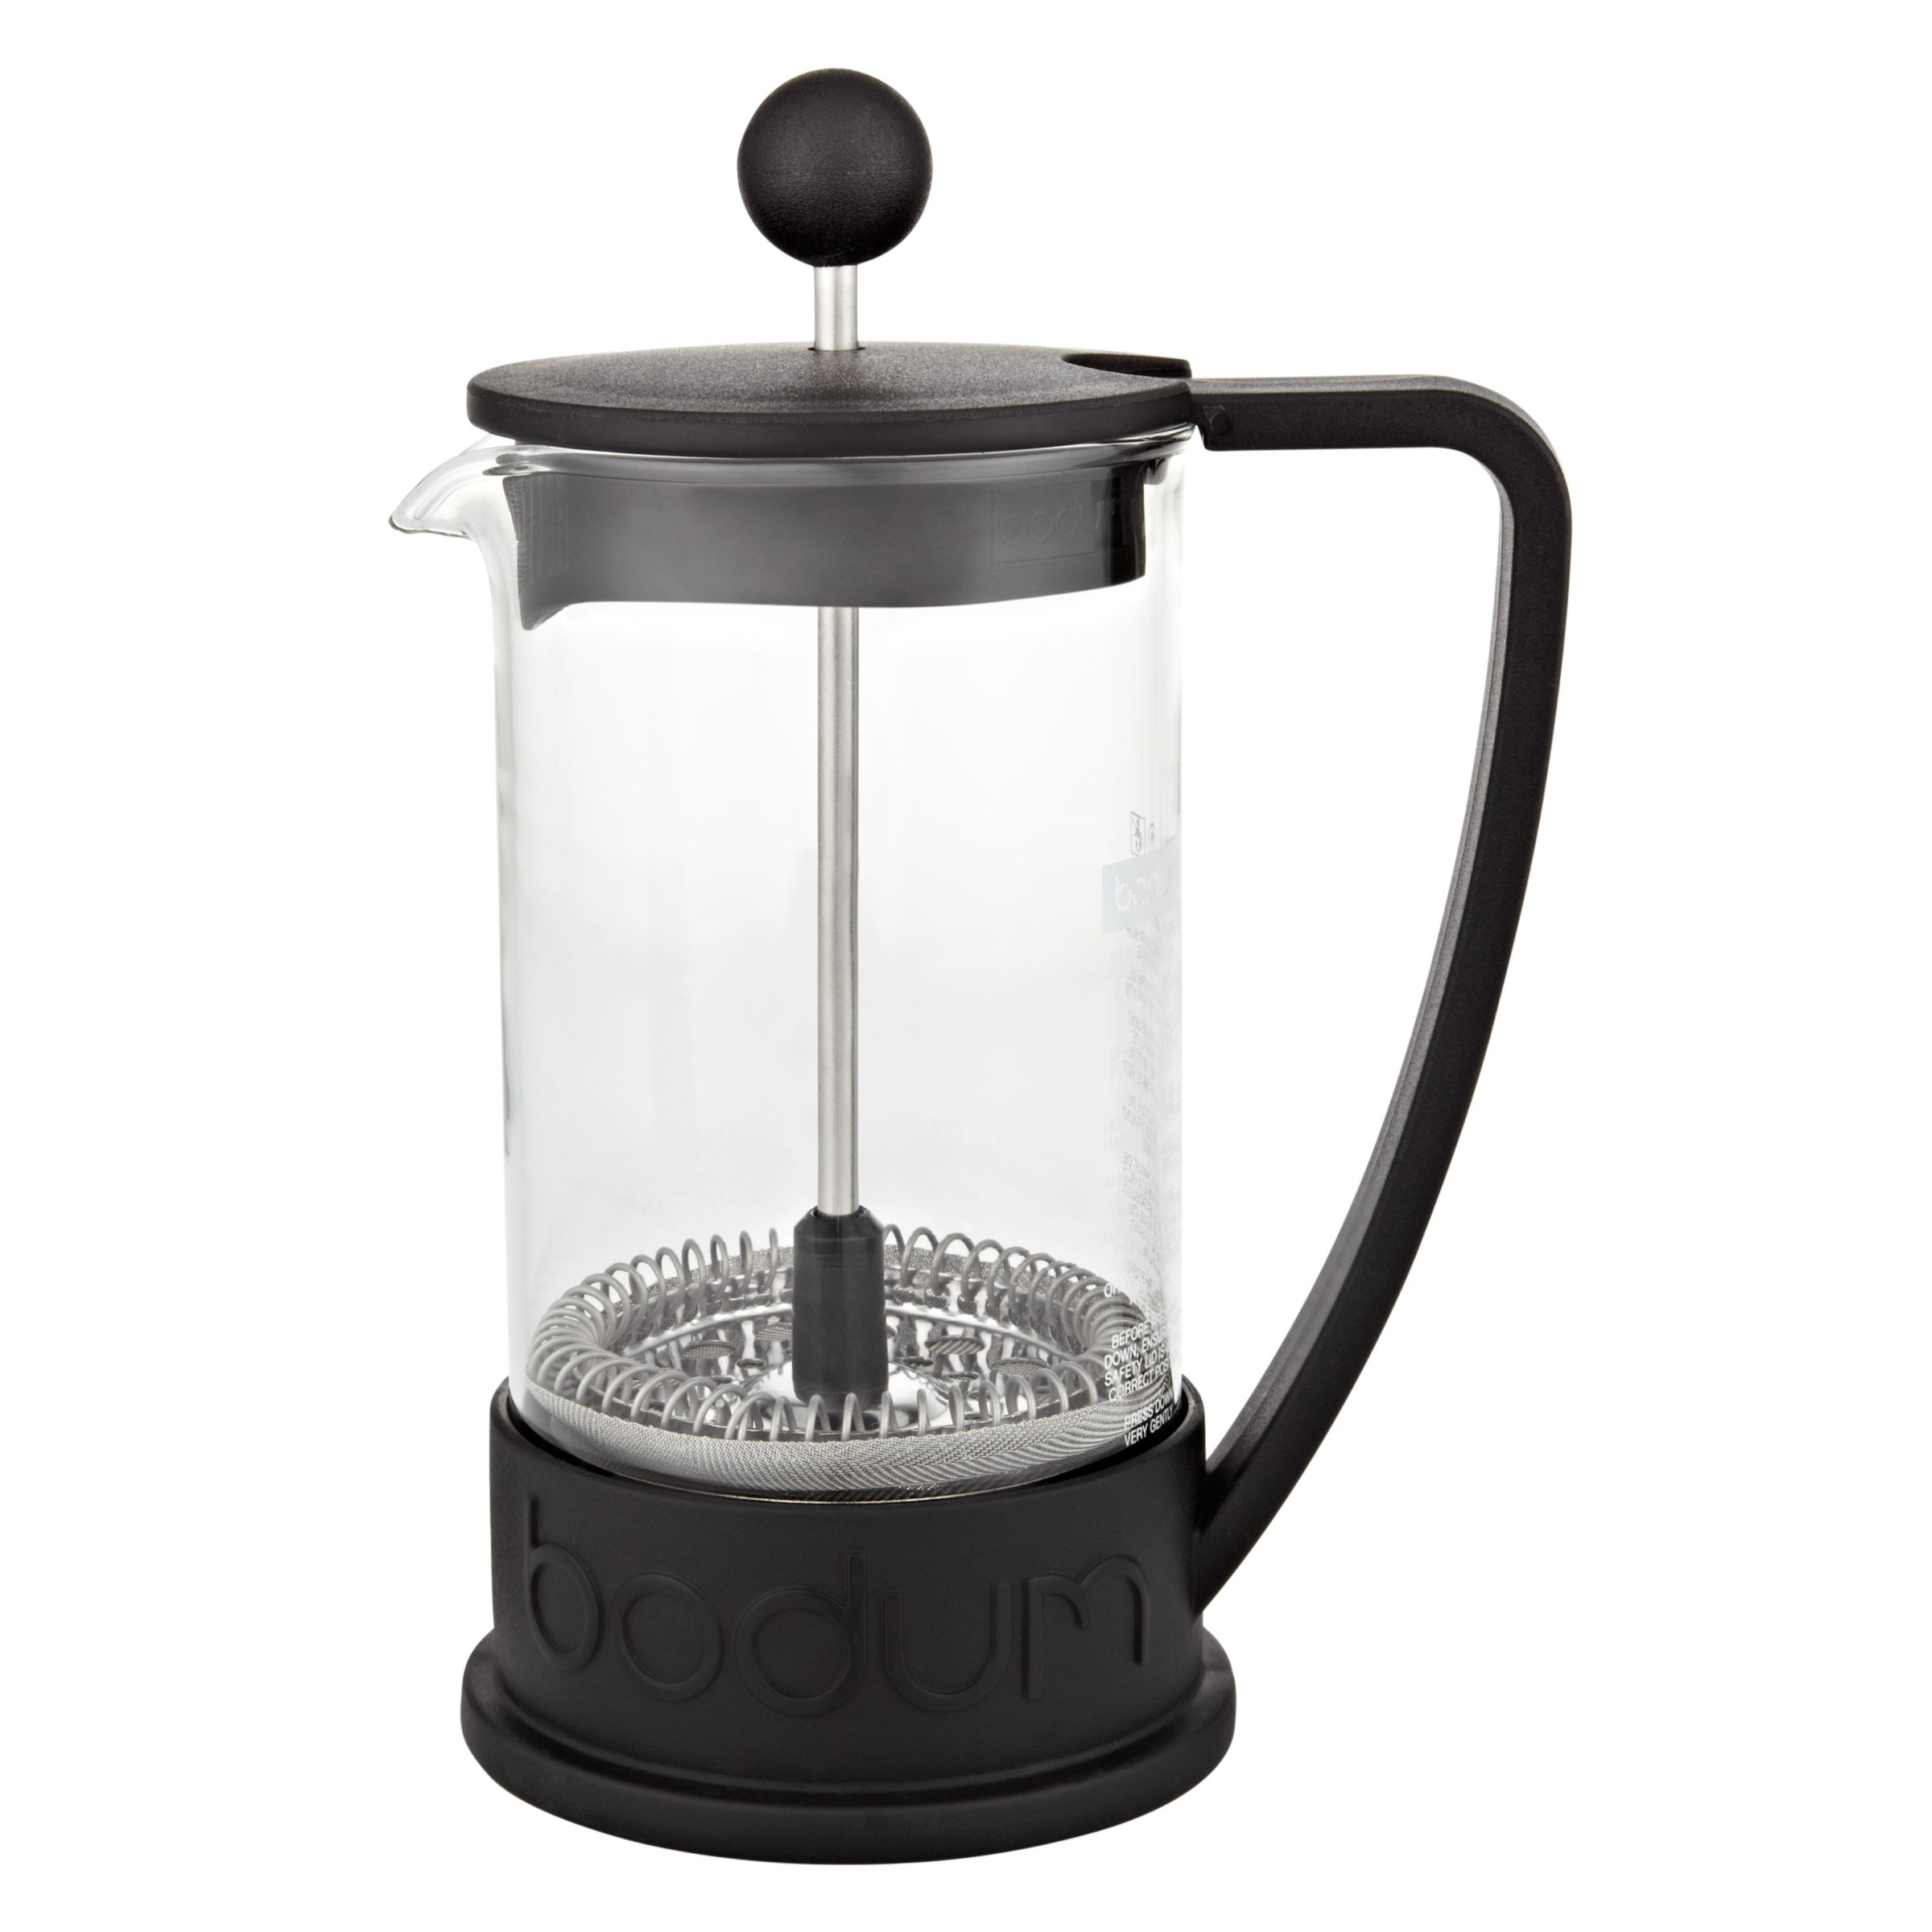 Italian Coffee Maker John Lewis : Buy Bodum Brazil French Press Coffee Maker John Lewis